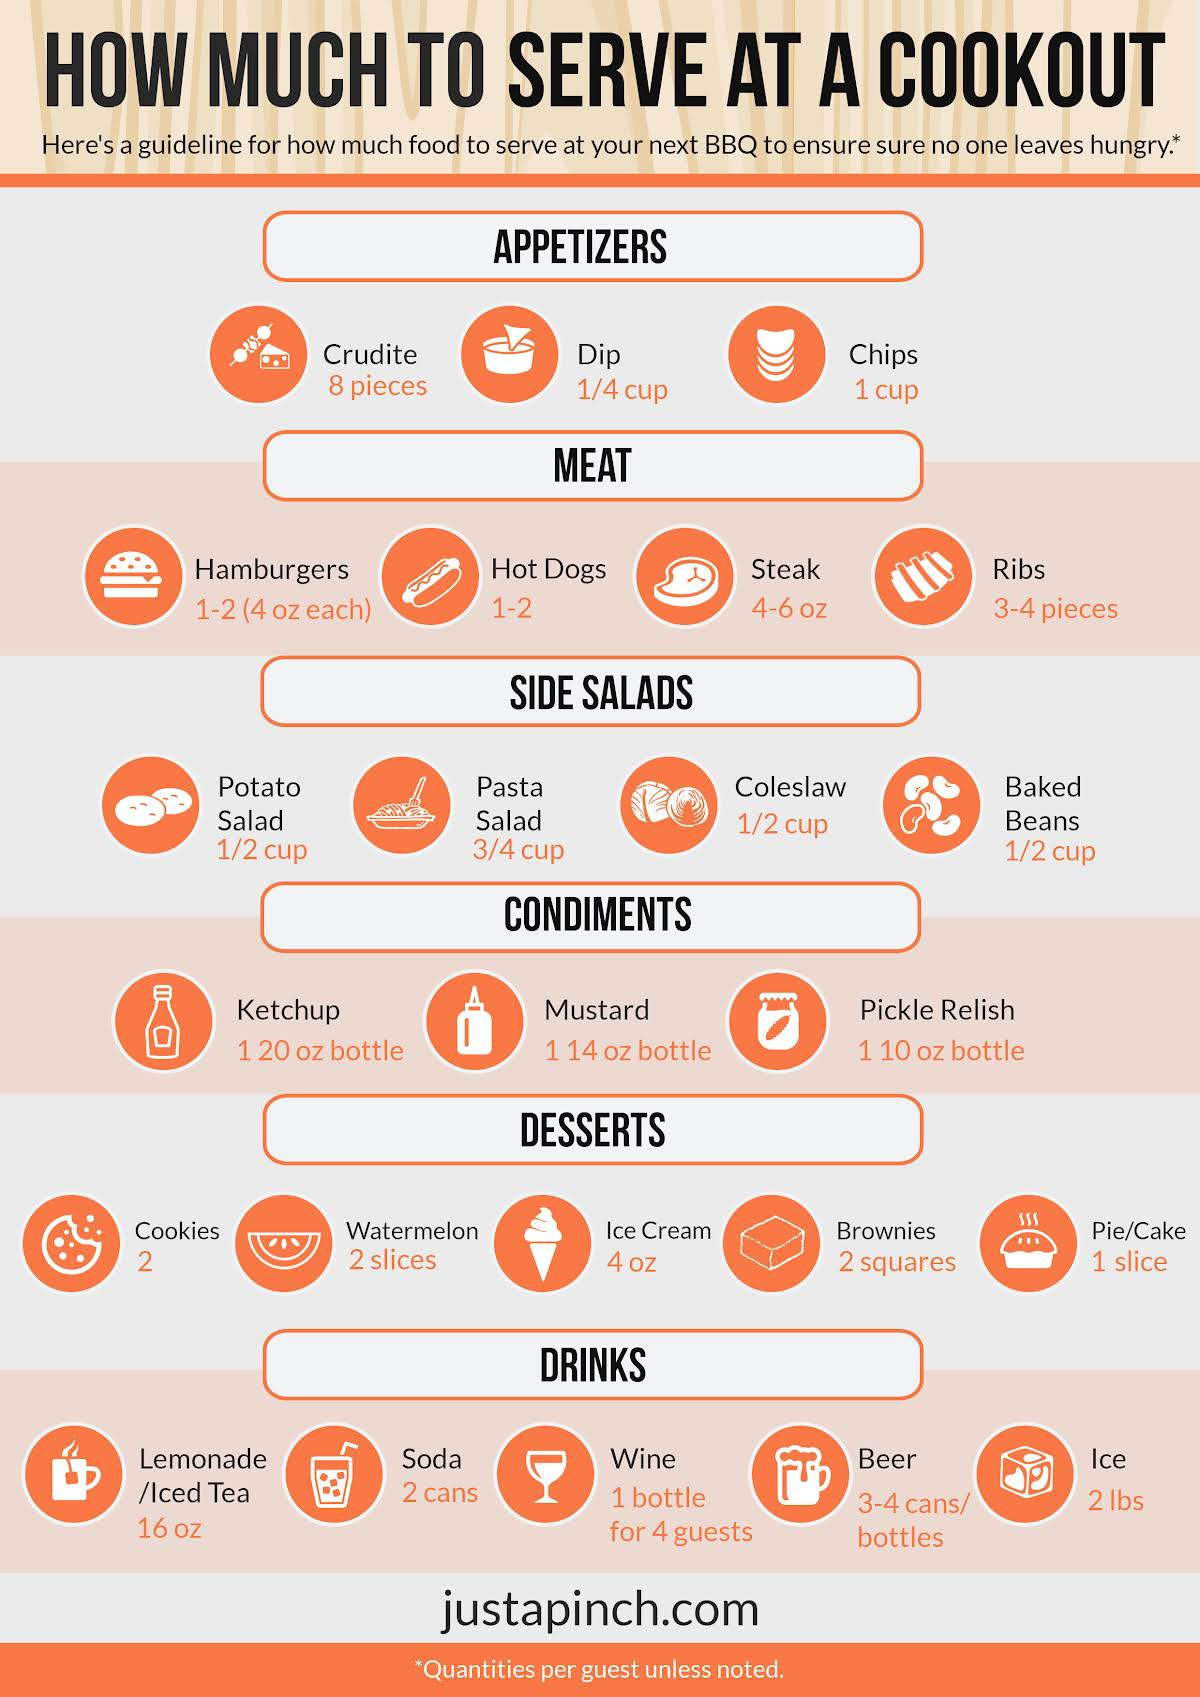 How Much to Serve at a Cookout